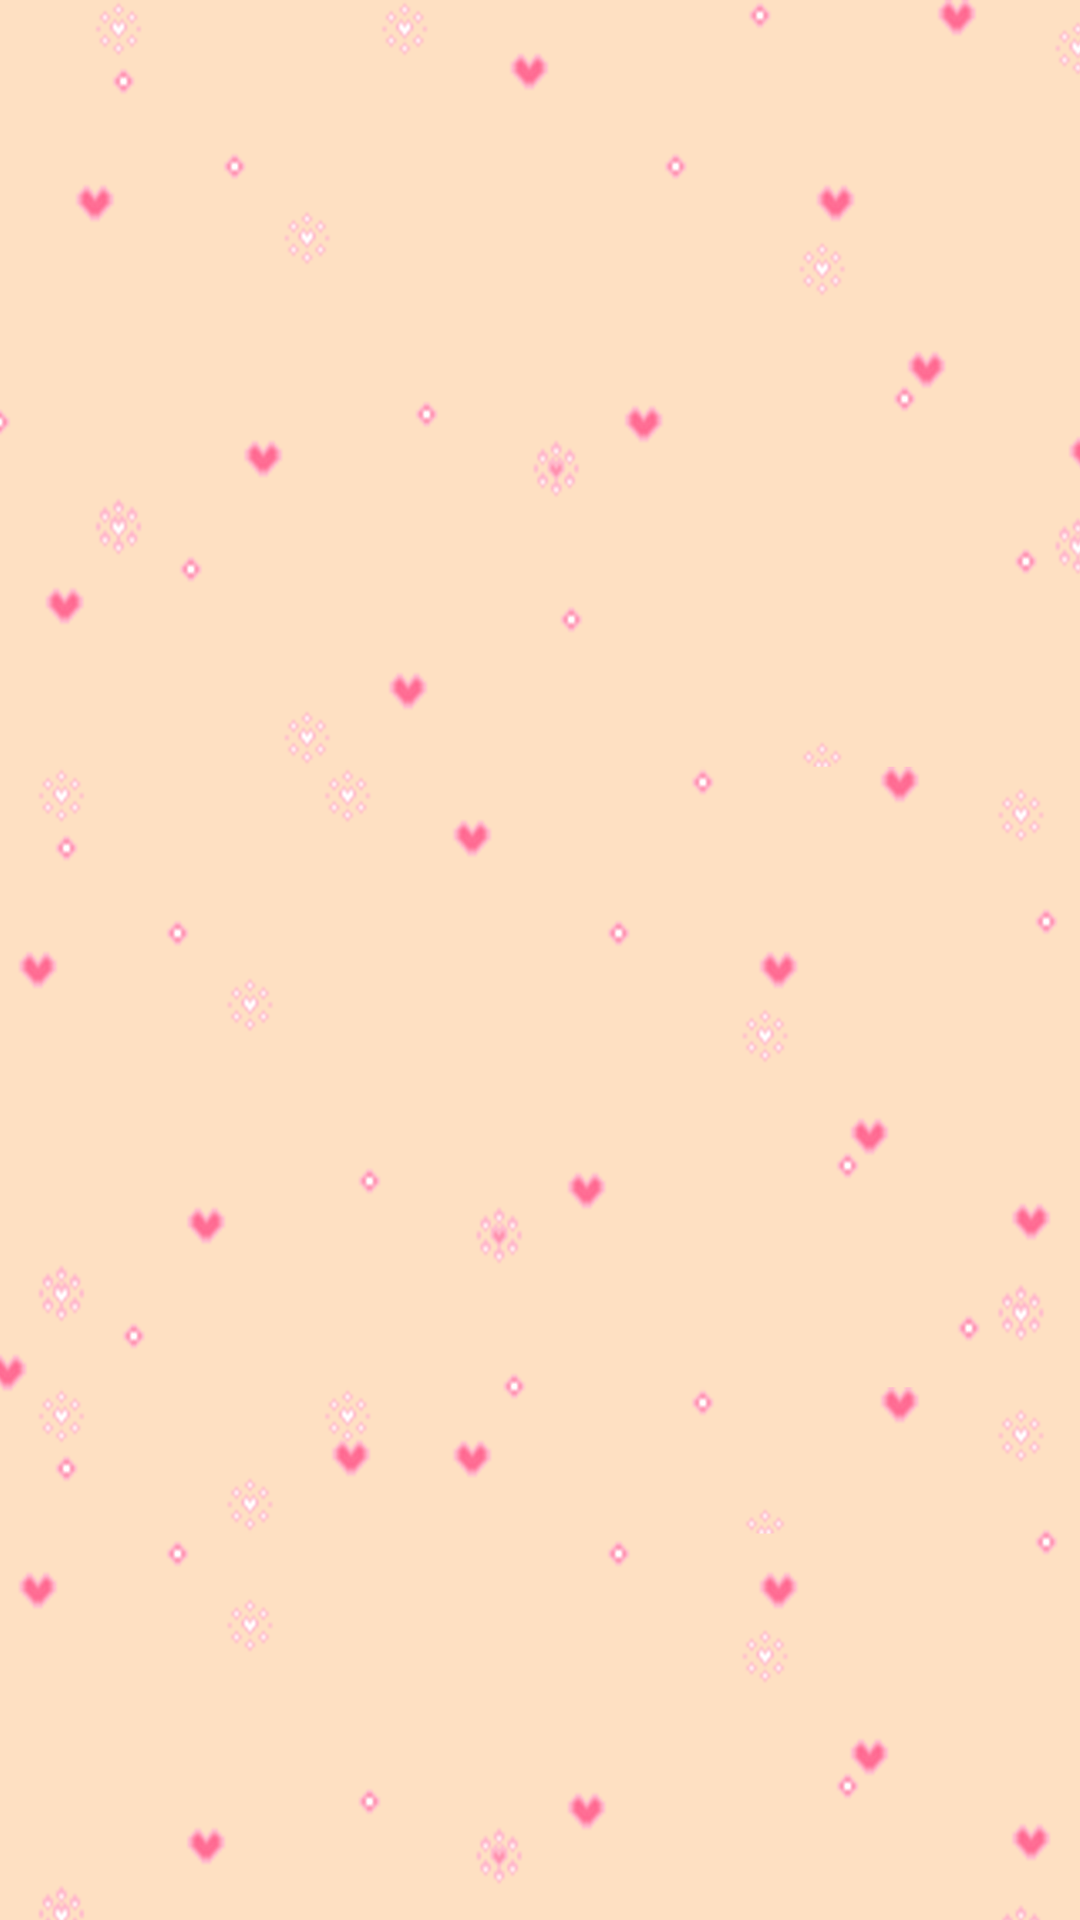 Pastel Peach Aesthetic Wallpapers on